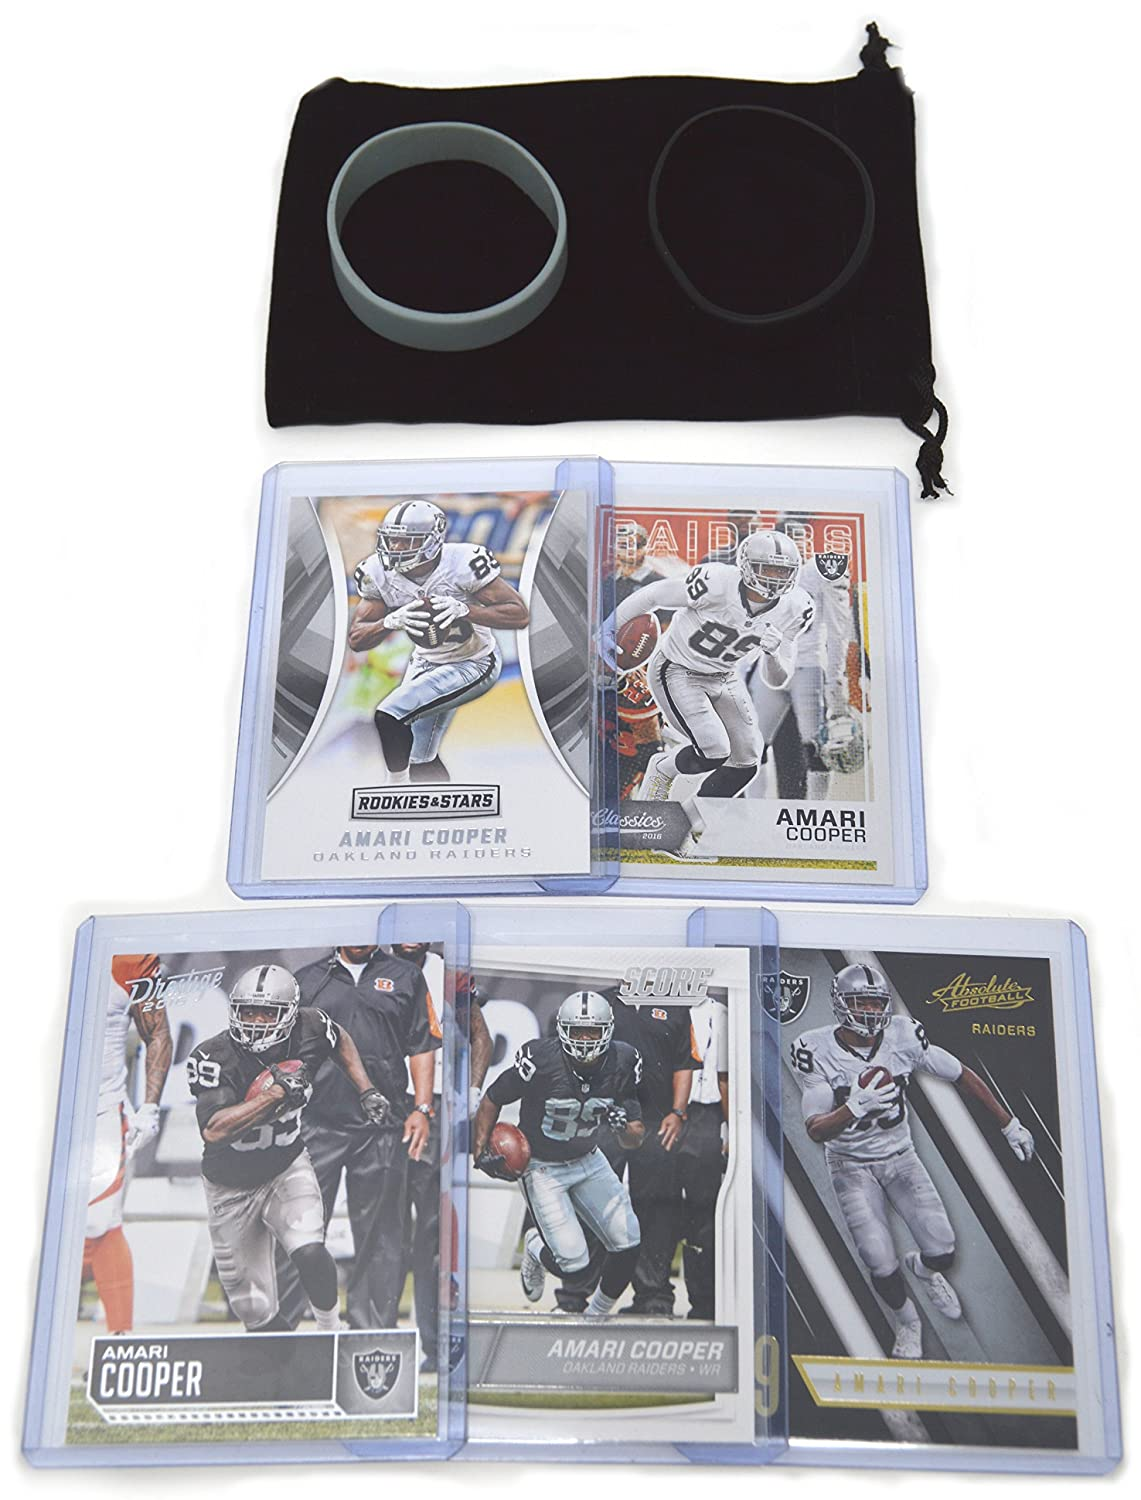 Amari Cooper Football Cards Assorted (5) Bundle - Oakland Raiders Las Vegas Trading Cards Panini Bowman Topps